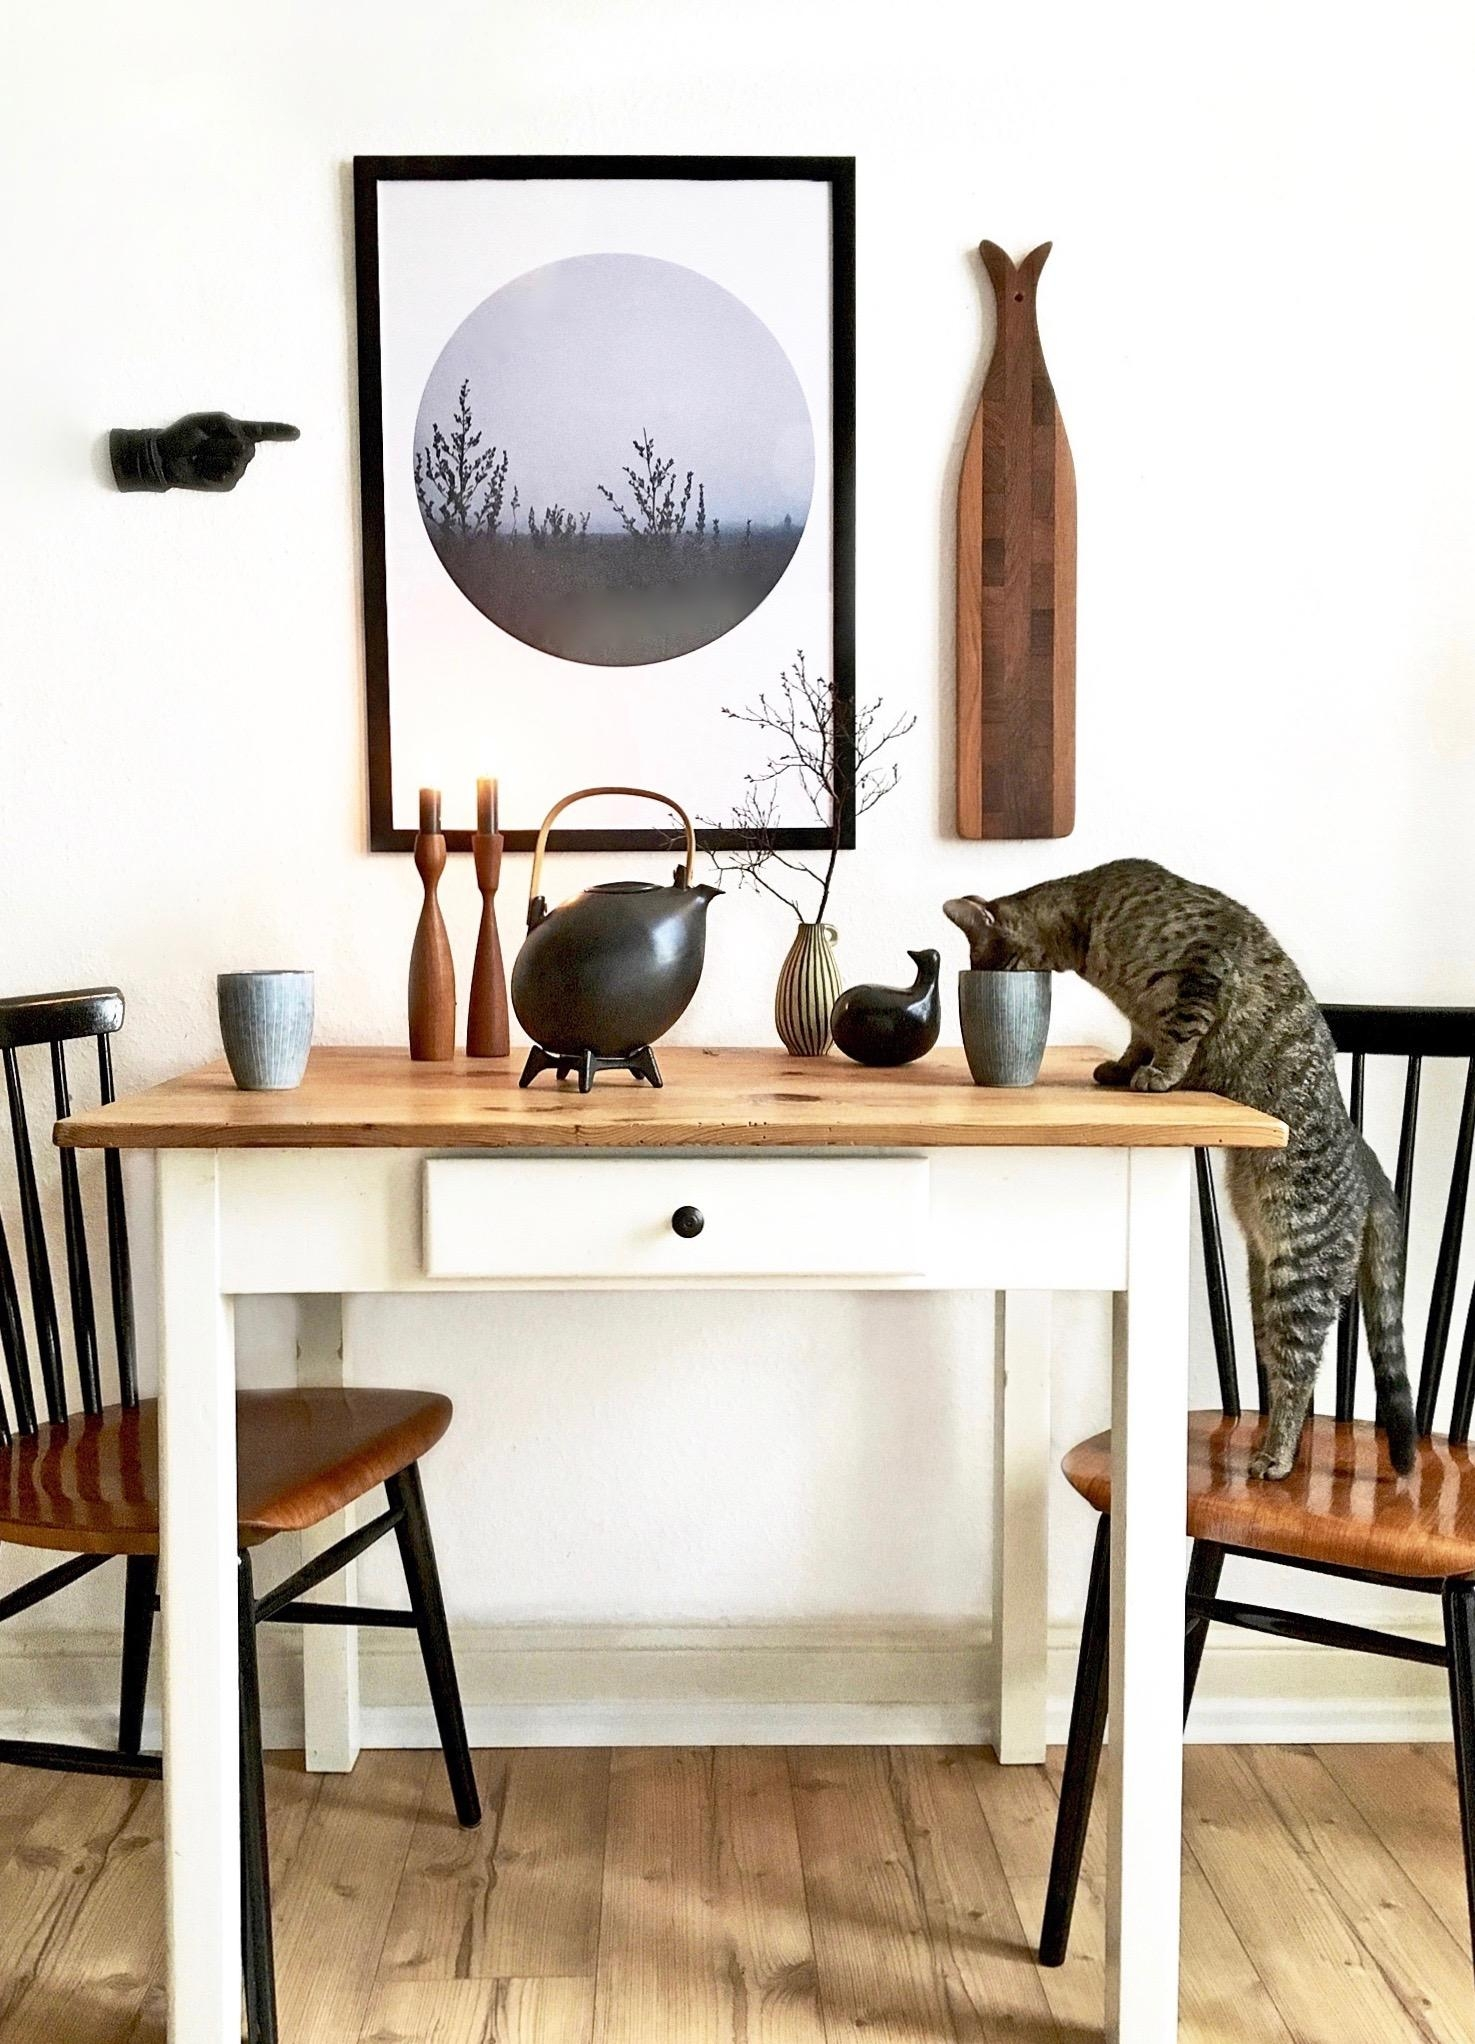 Coffee  time with cat and our new poster  kueche etsyshop altbauwohnung poster midcentury vintage  07aed252 00af 43a1 8107 0fa5ef0477d8